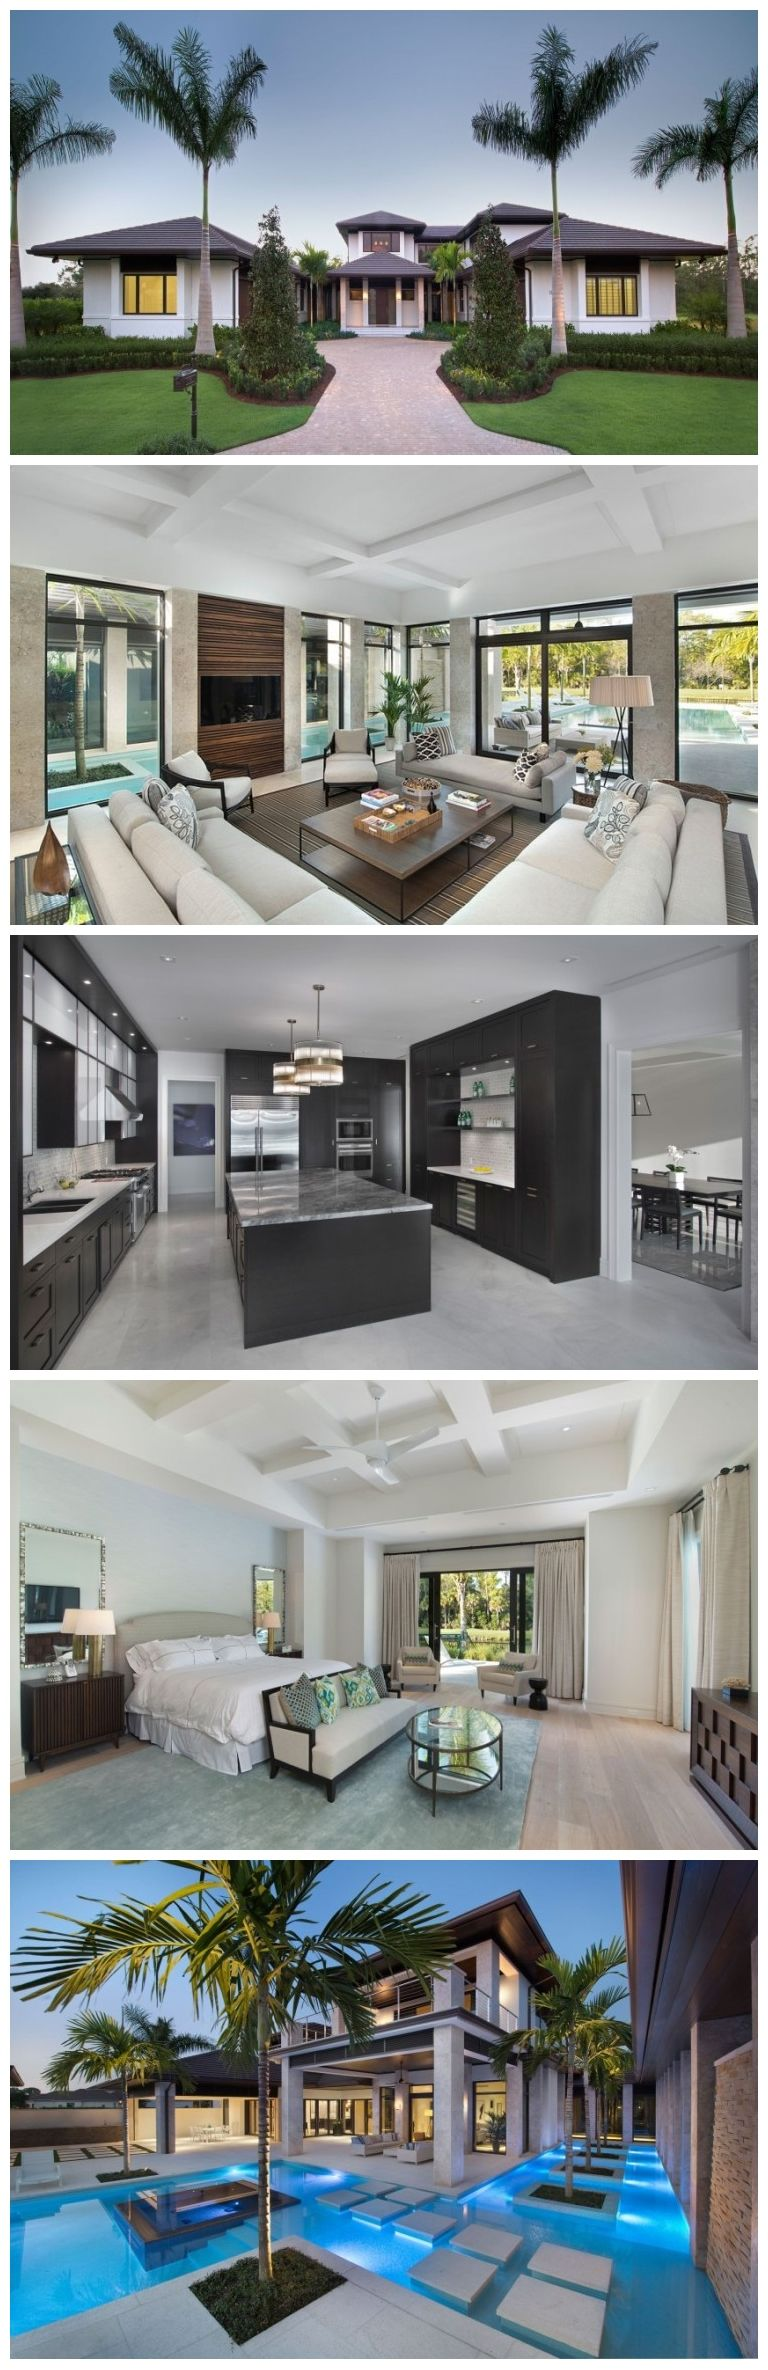 Exclusive Private Residence in Florida by Harwick Homes | Luxus ...